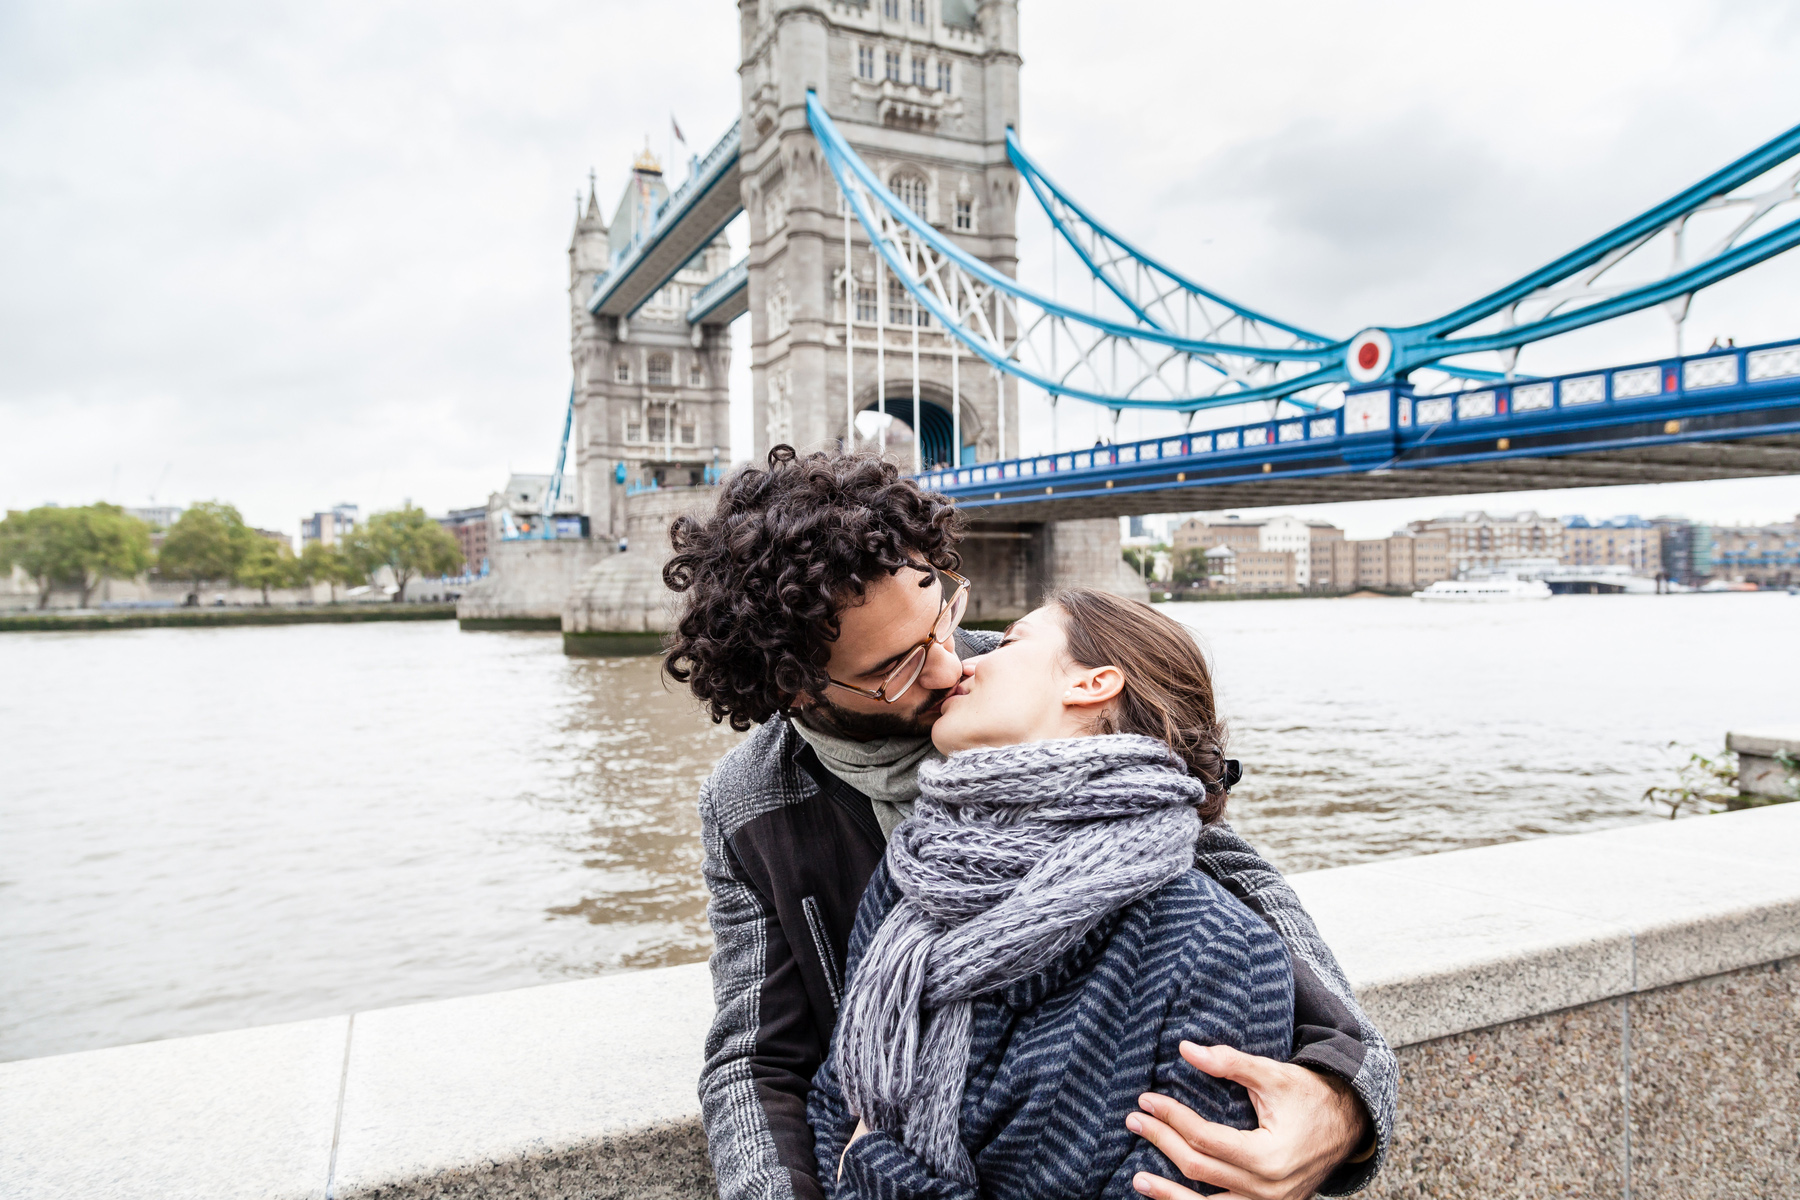 A couple kissing in front of the Tower Bridge